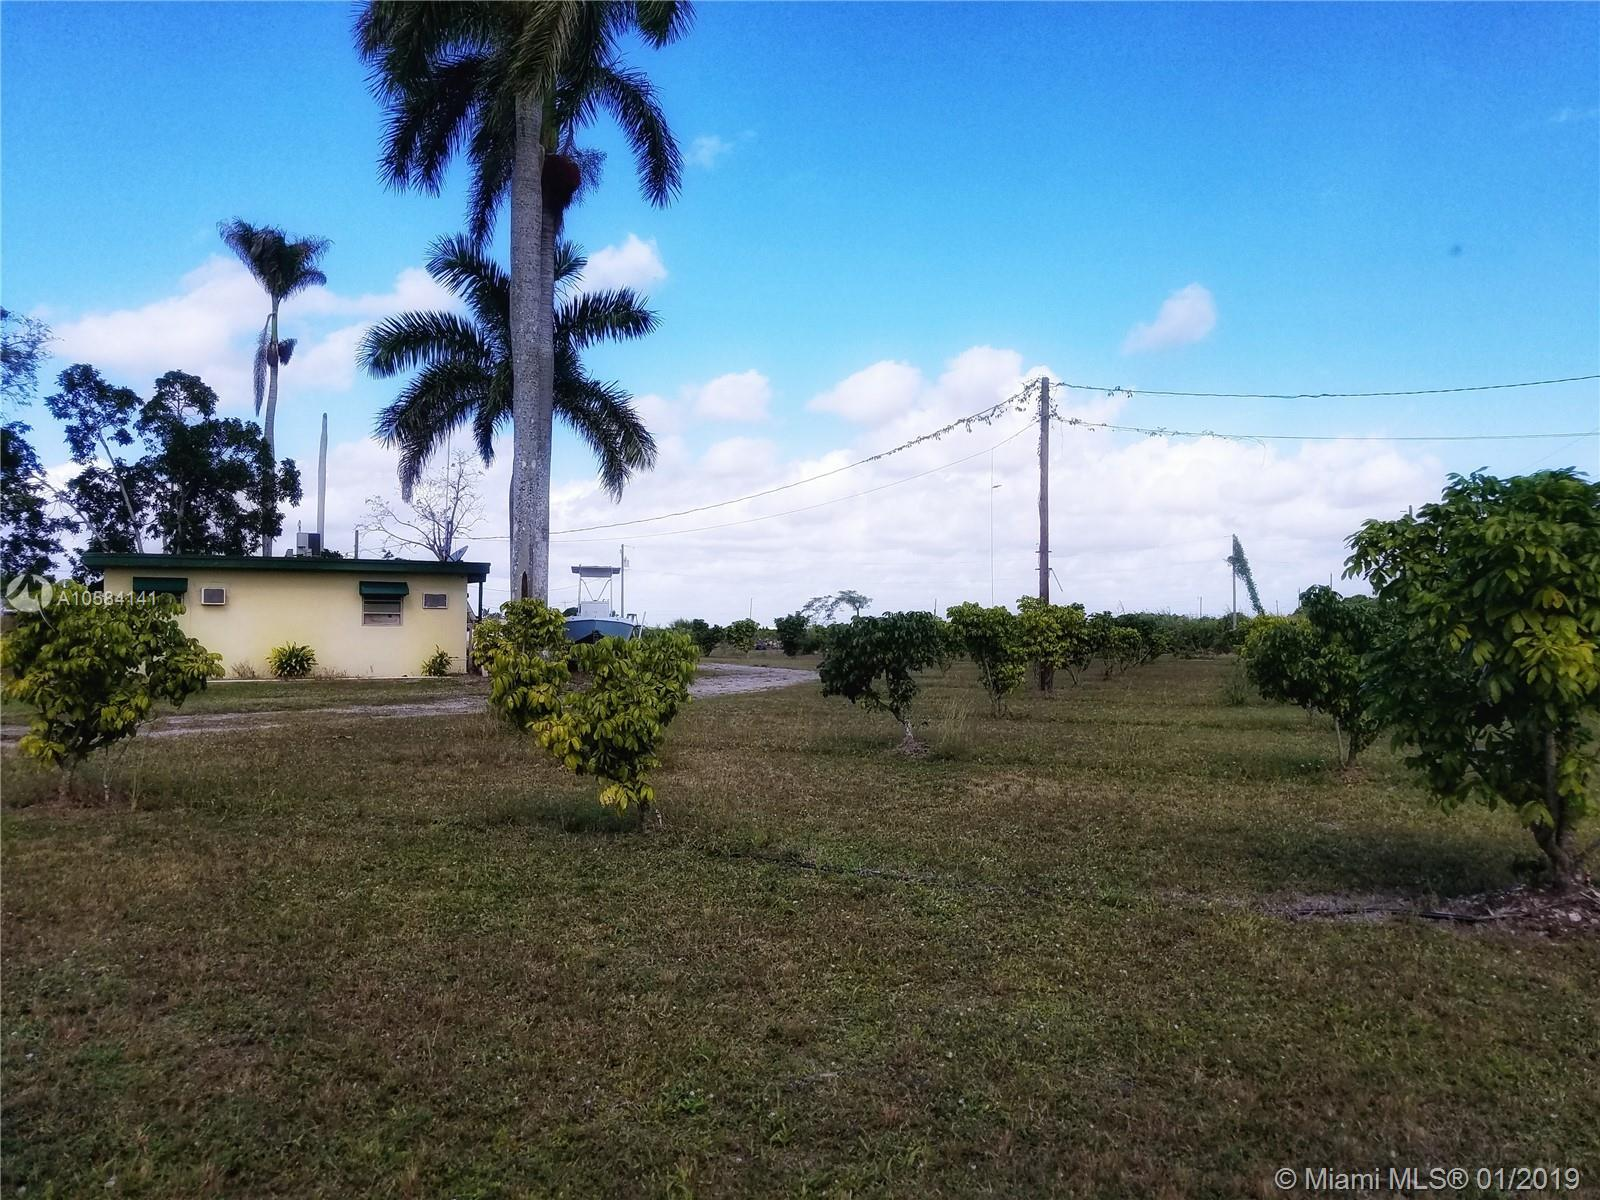 21025 SW 300th St, Homestead, Florida